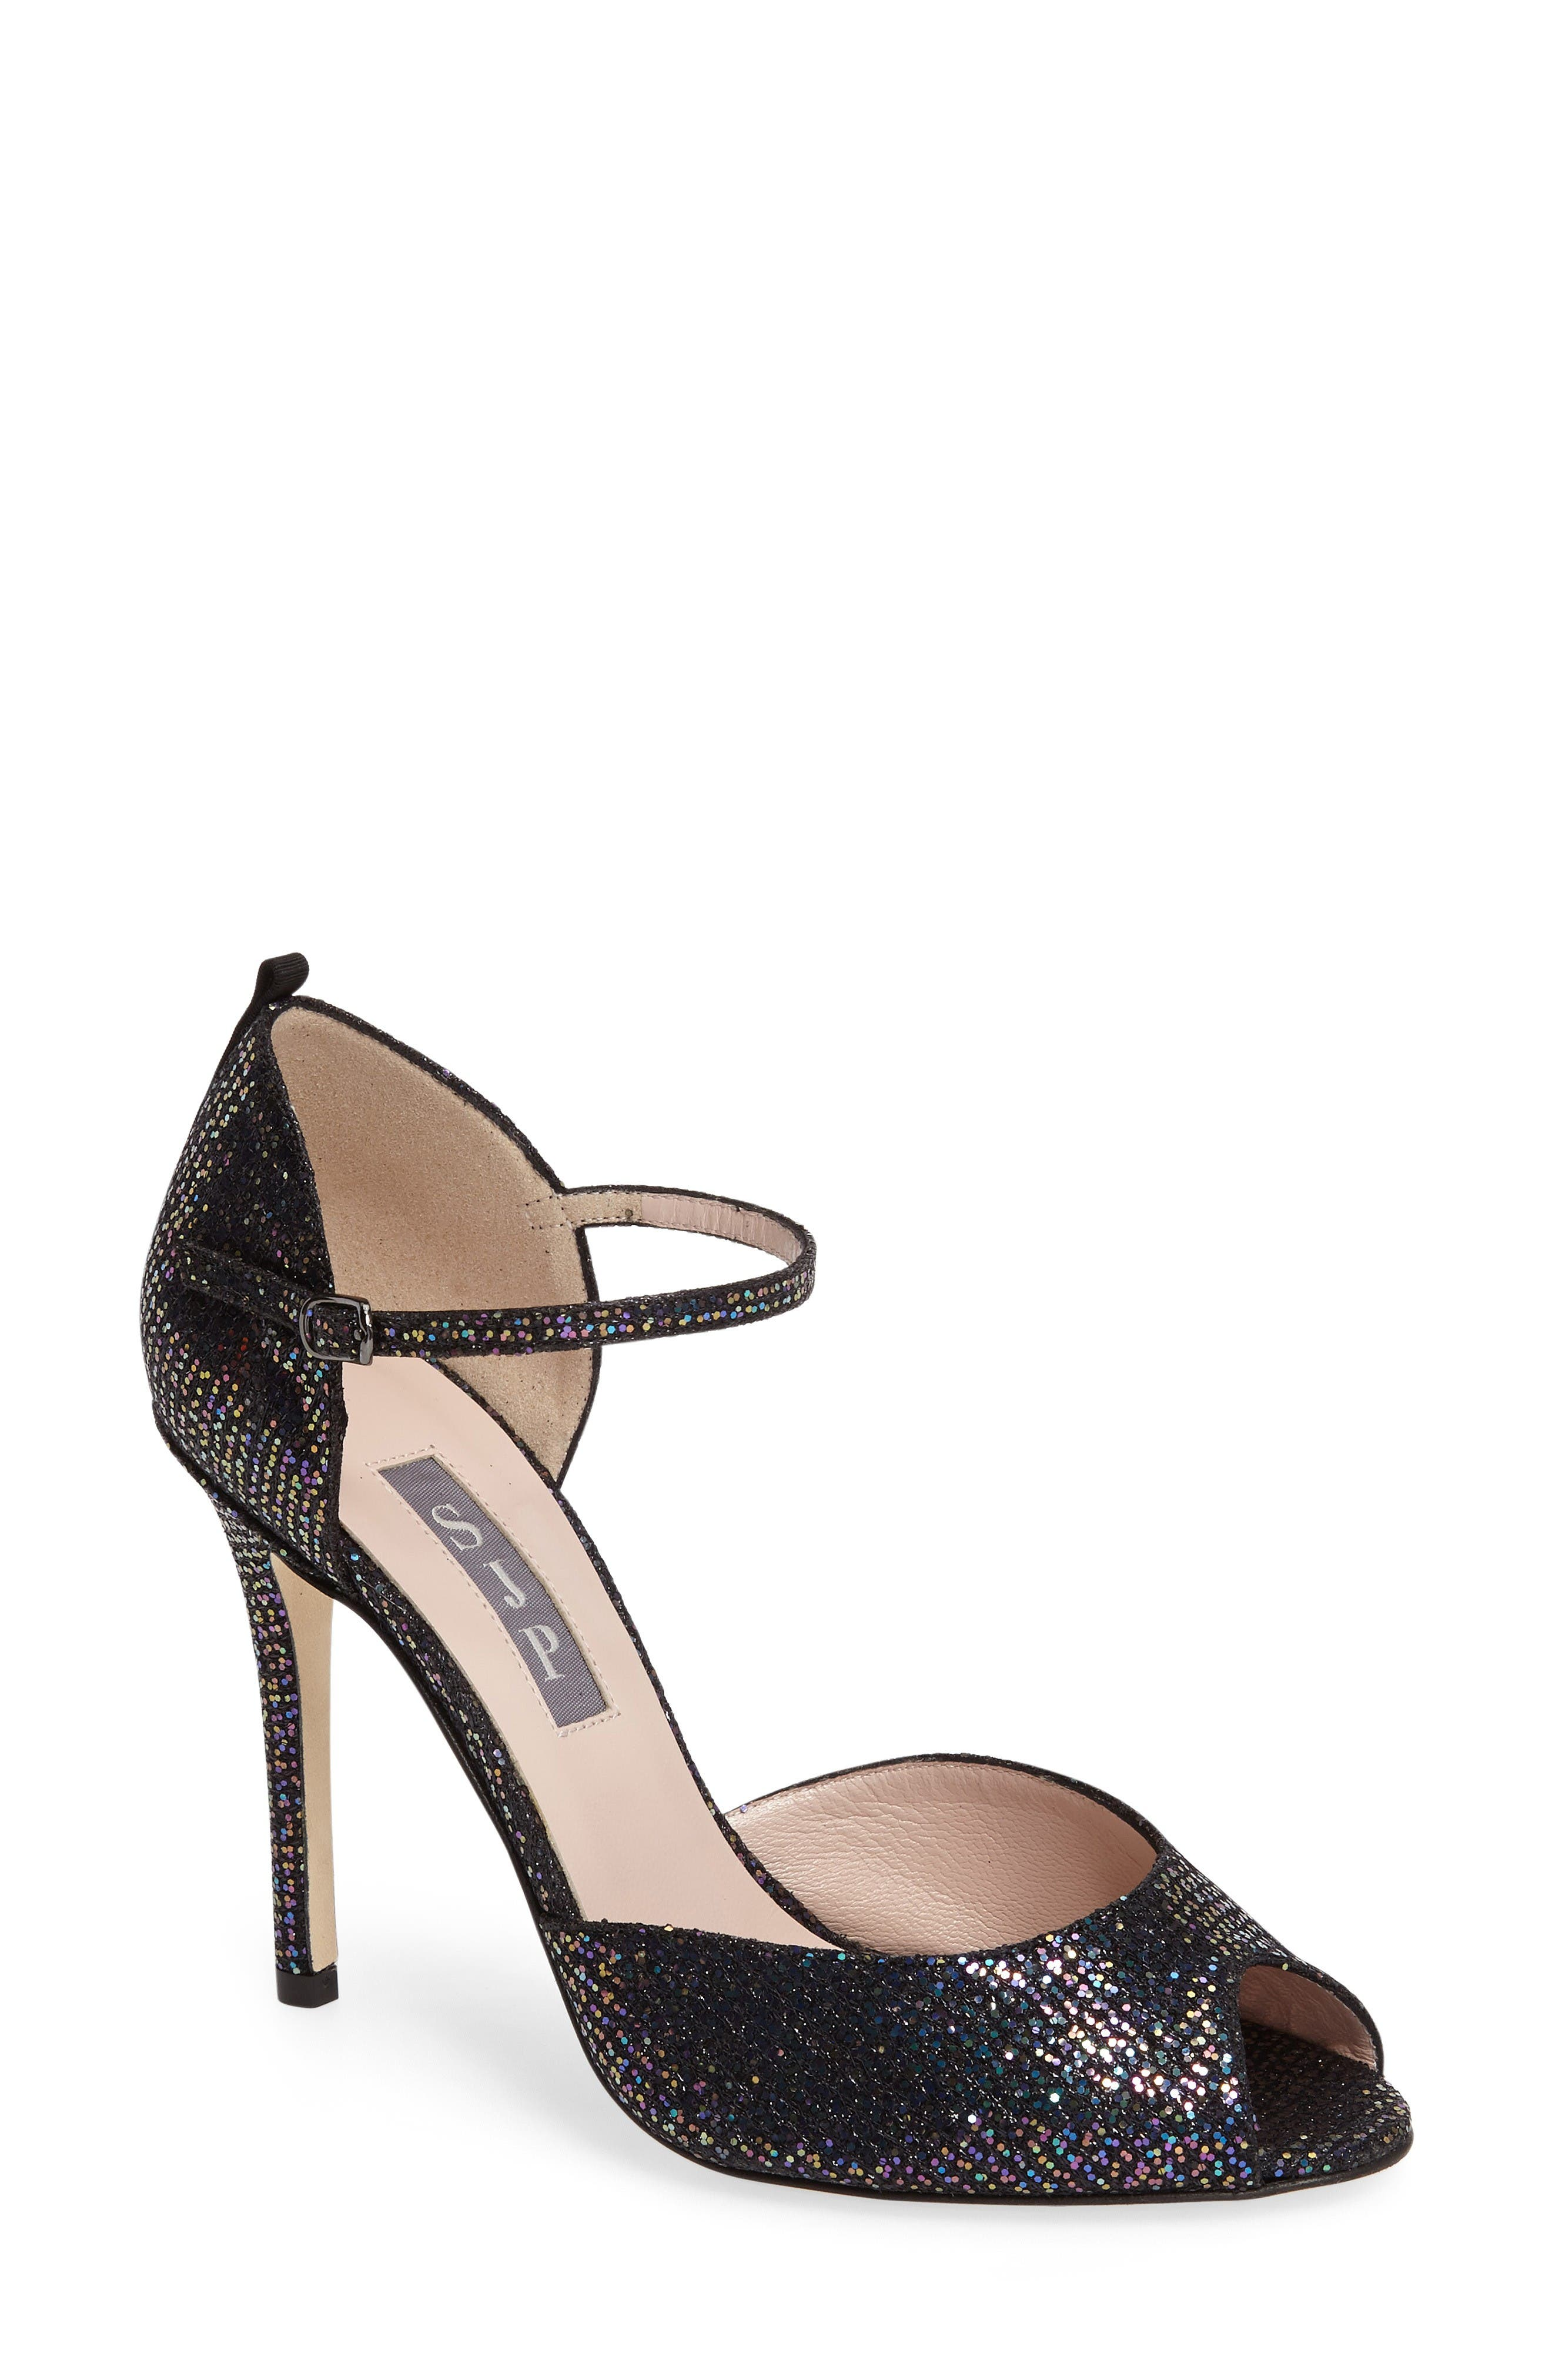 Alternate Image 1 Selected - SJP by Sarah Jessica Parker by Sarah Jessica Parker 'Ursula' Open Toe d'Orsay Metallic Leather Pump